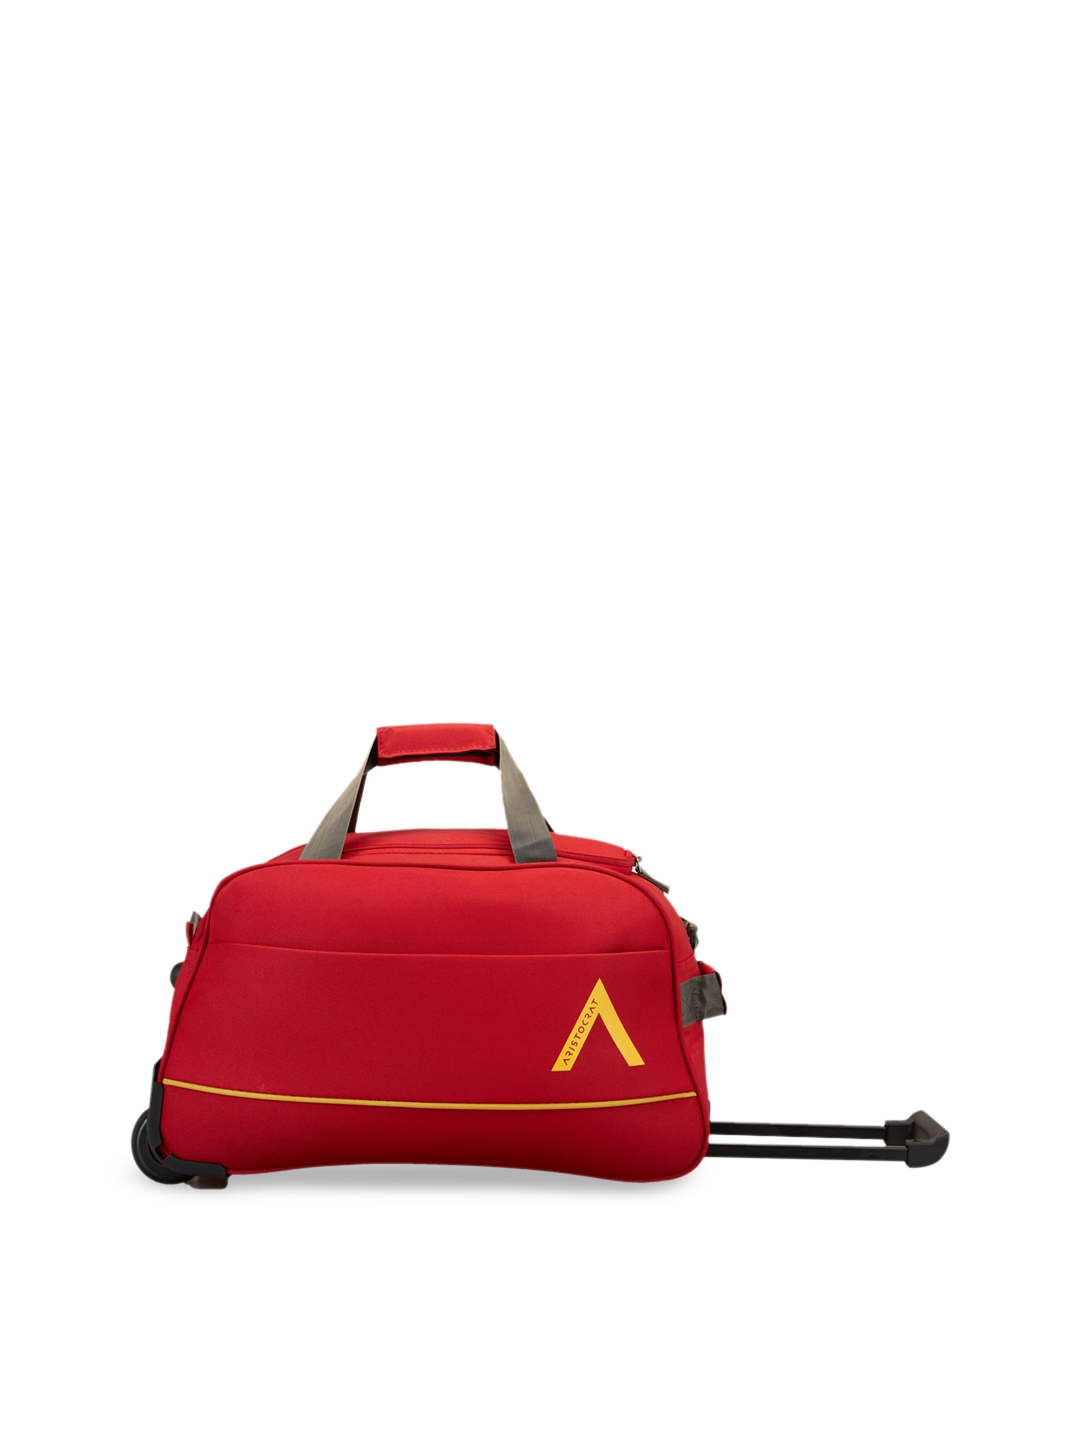 Aristocrat Red Solid Cabin Size Trolley Duffle Bag